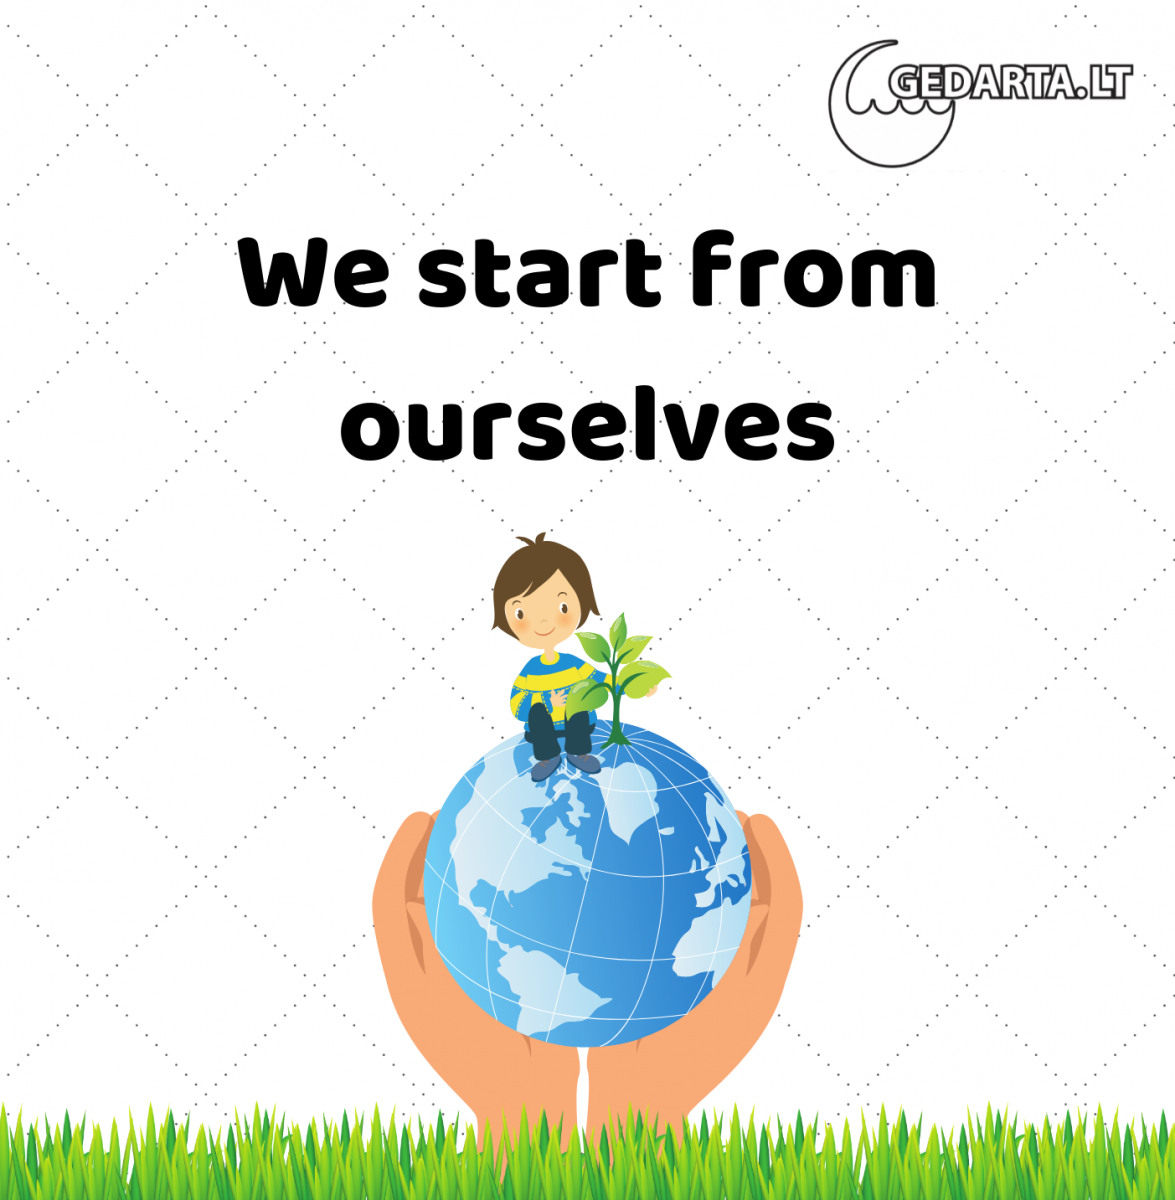 We start from ourselves